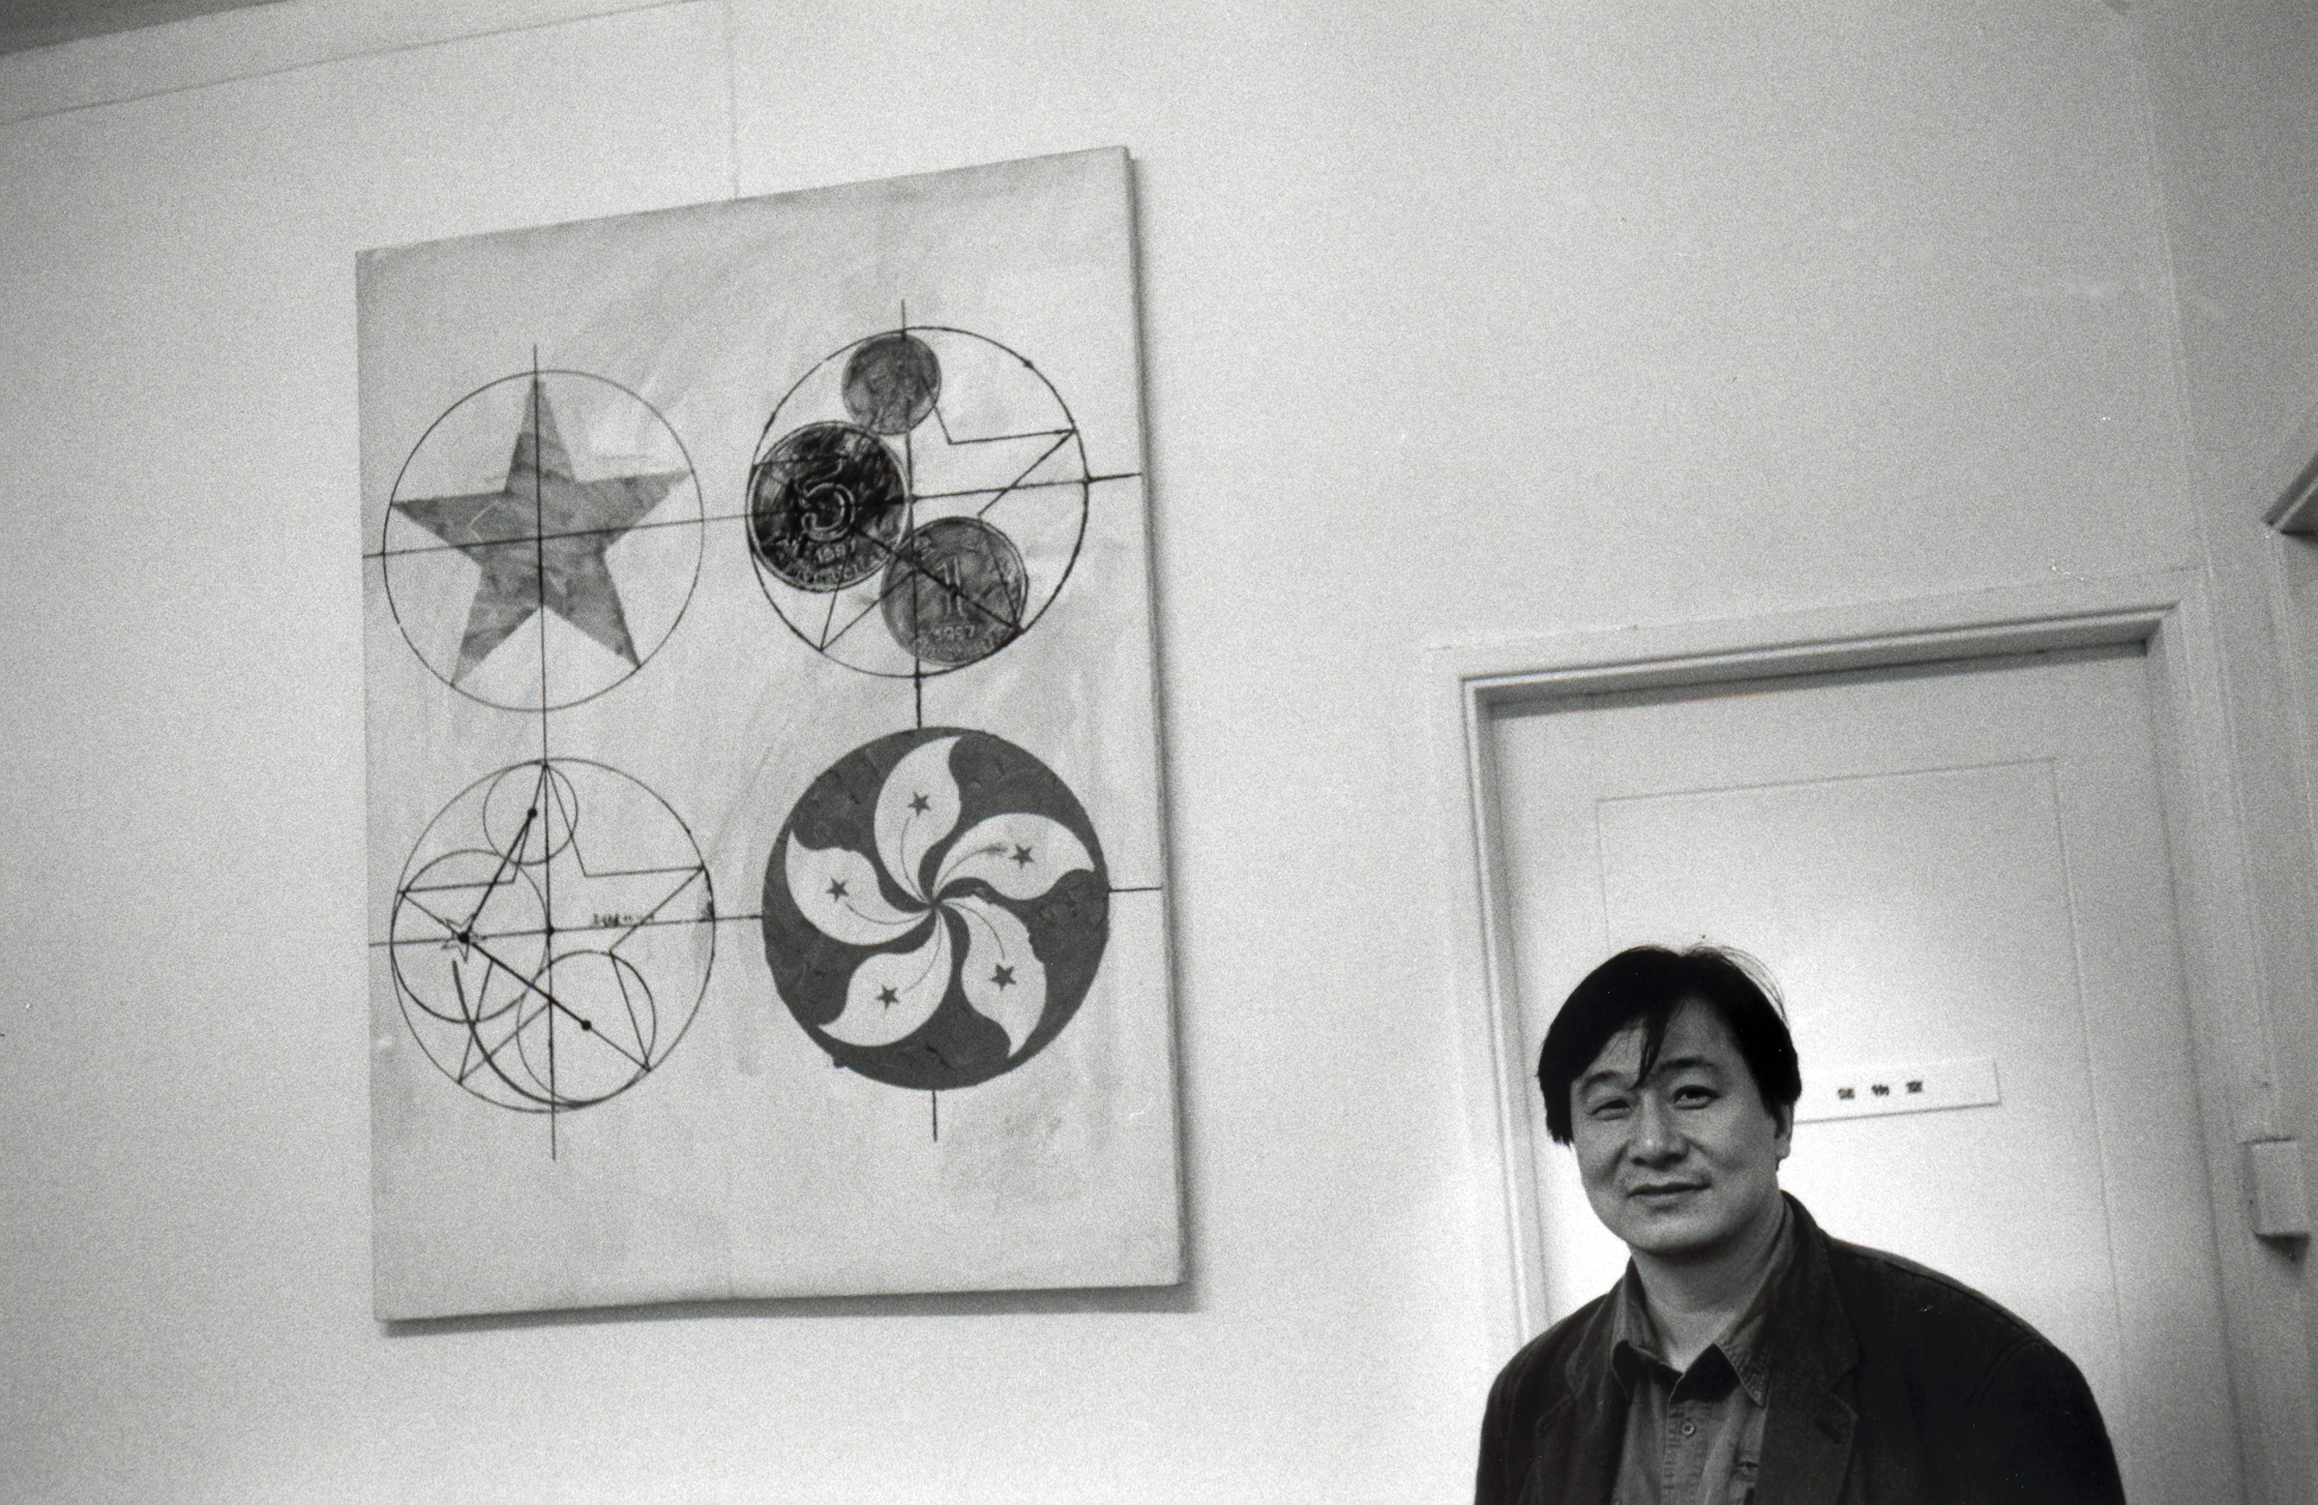 Wong Shun-Kit in Front of His Work 'Idea'